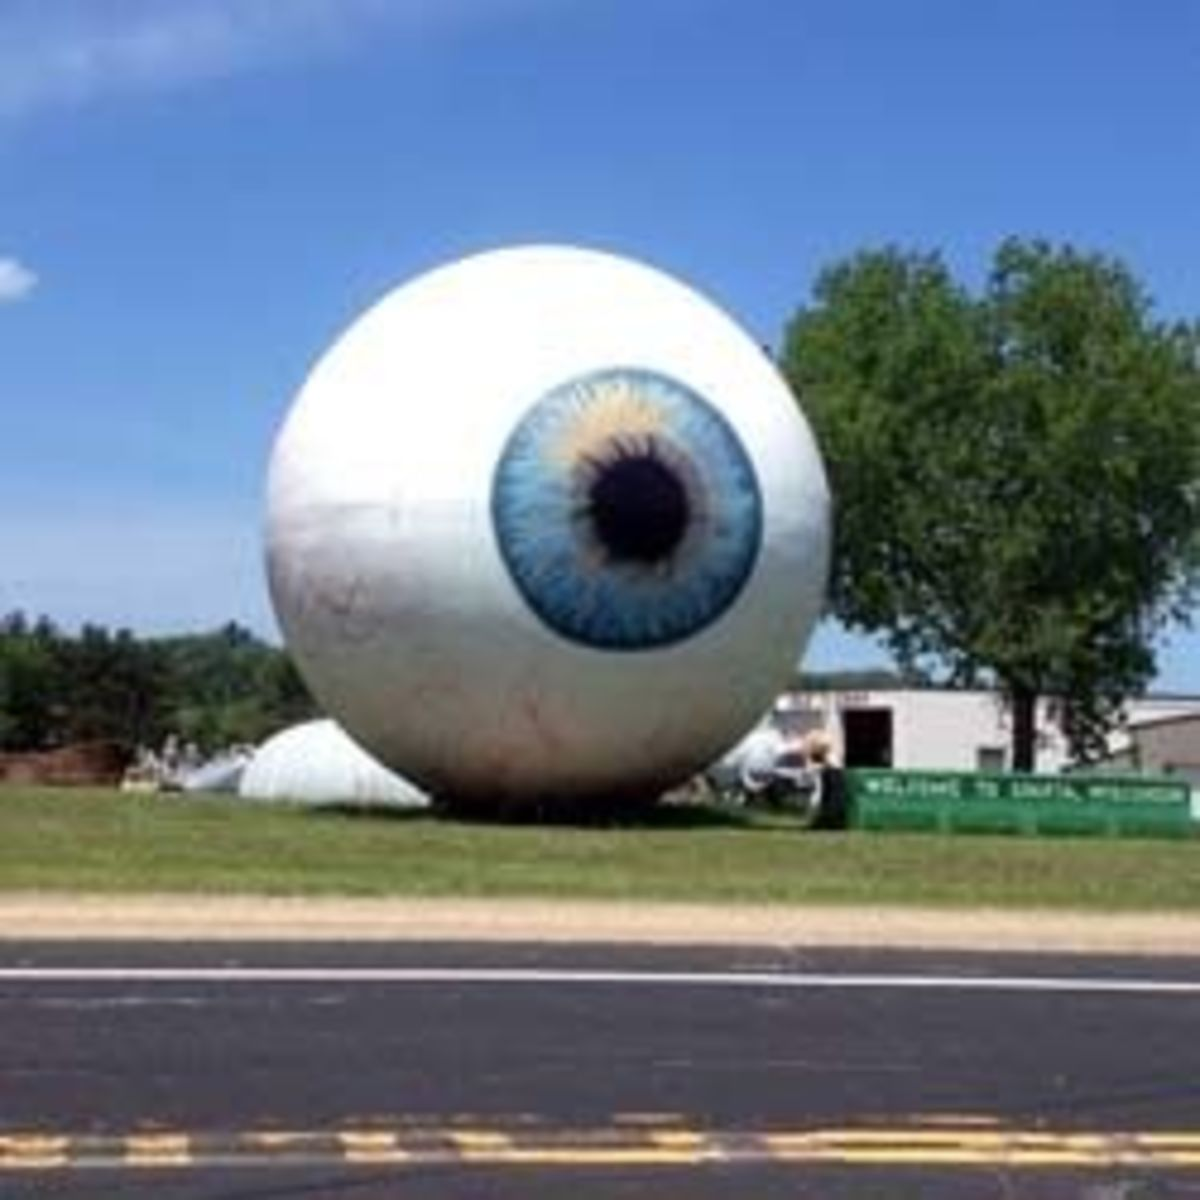 A Giant Eyeball on the Side of the Road in Sparta, WI